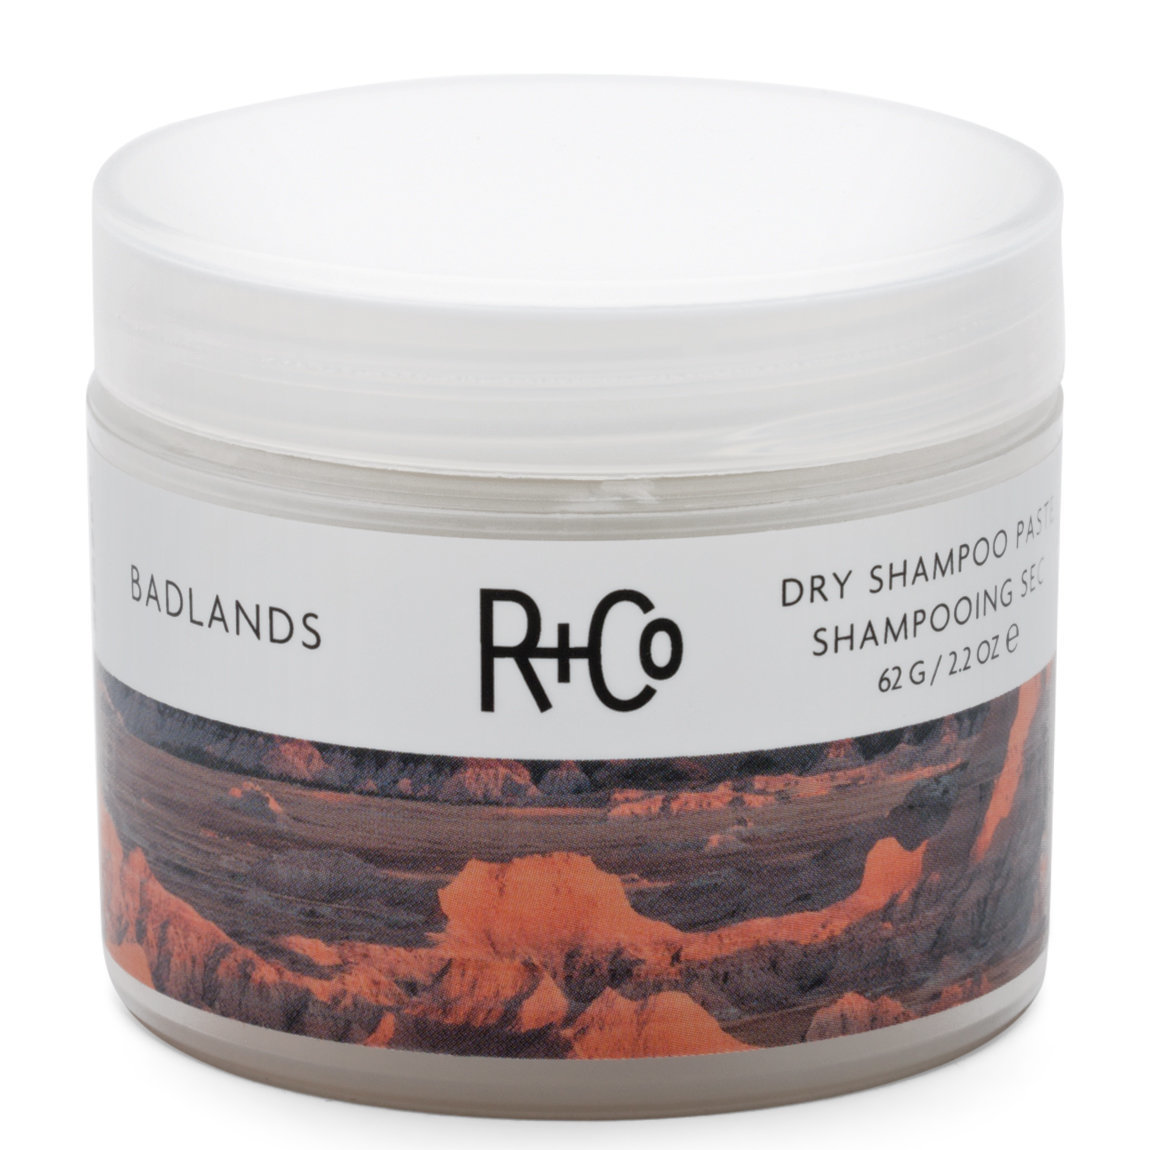 R+Co Badlands Dry Shampoo Badlands Dry Shampoo Paste product smear.